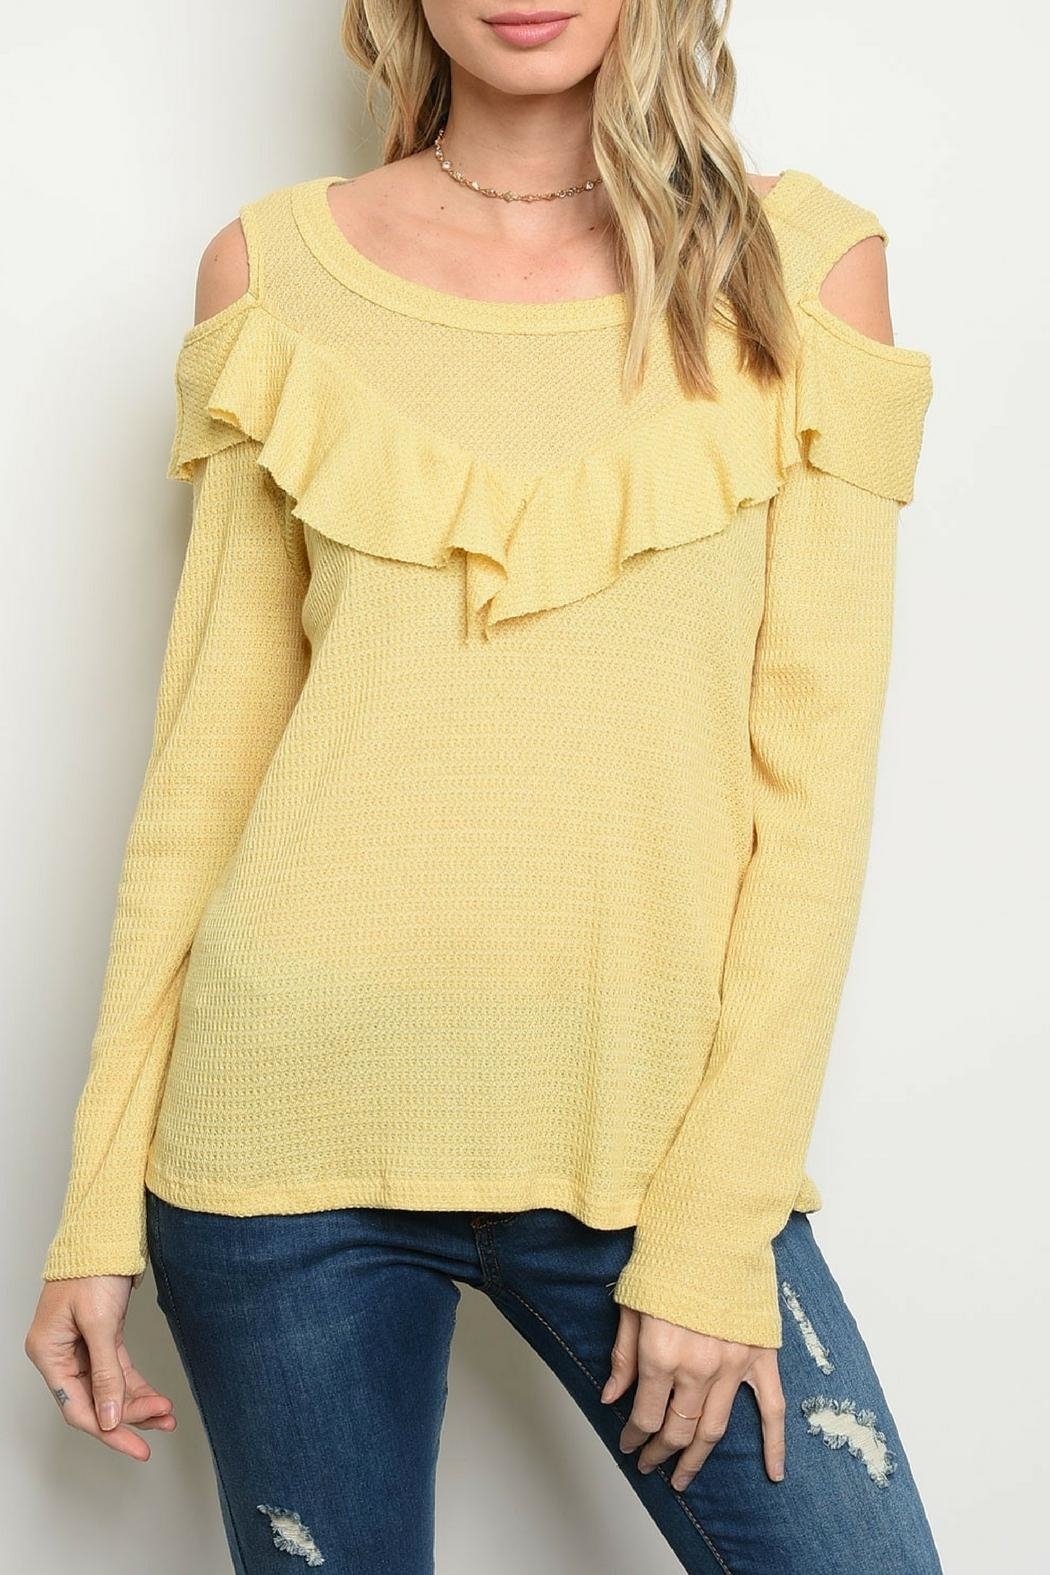 Sweet Claire Yellow Ruffle Top - Main Image